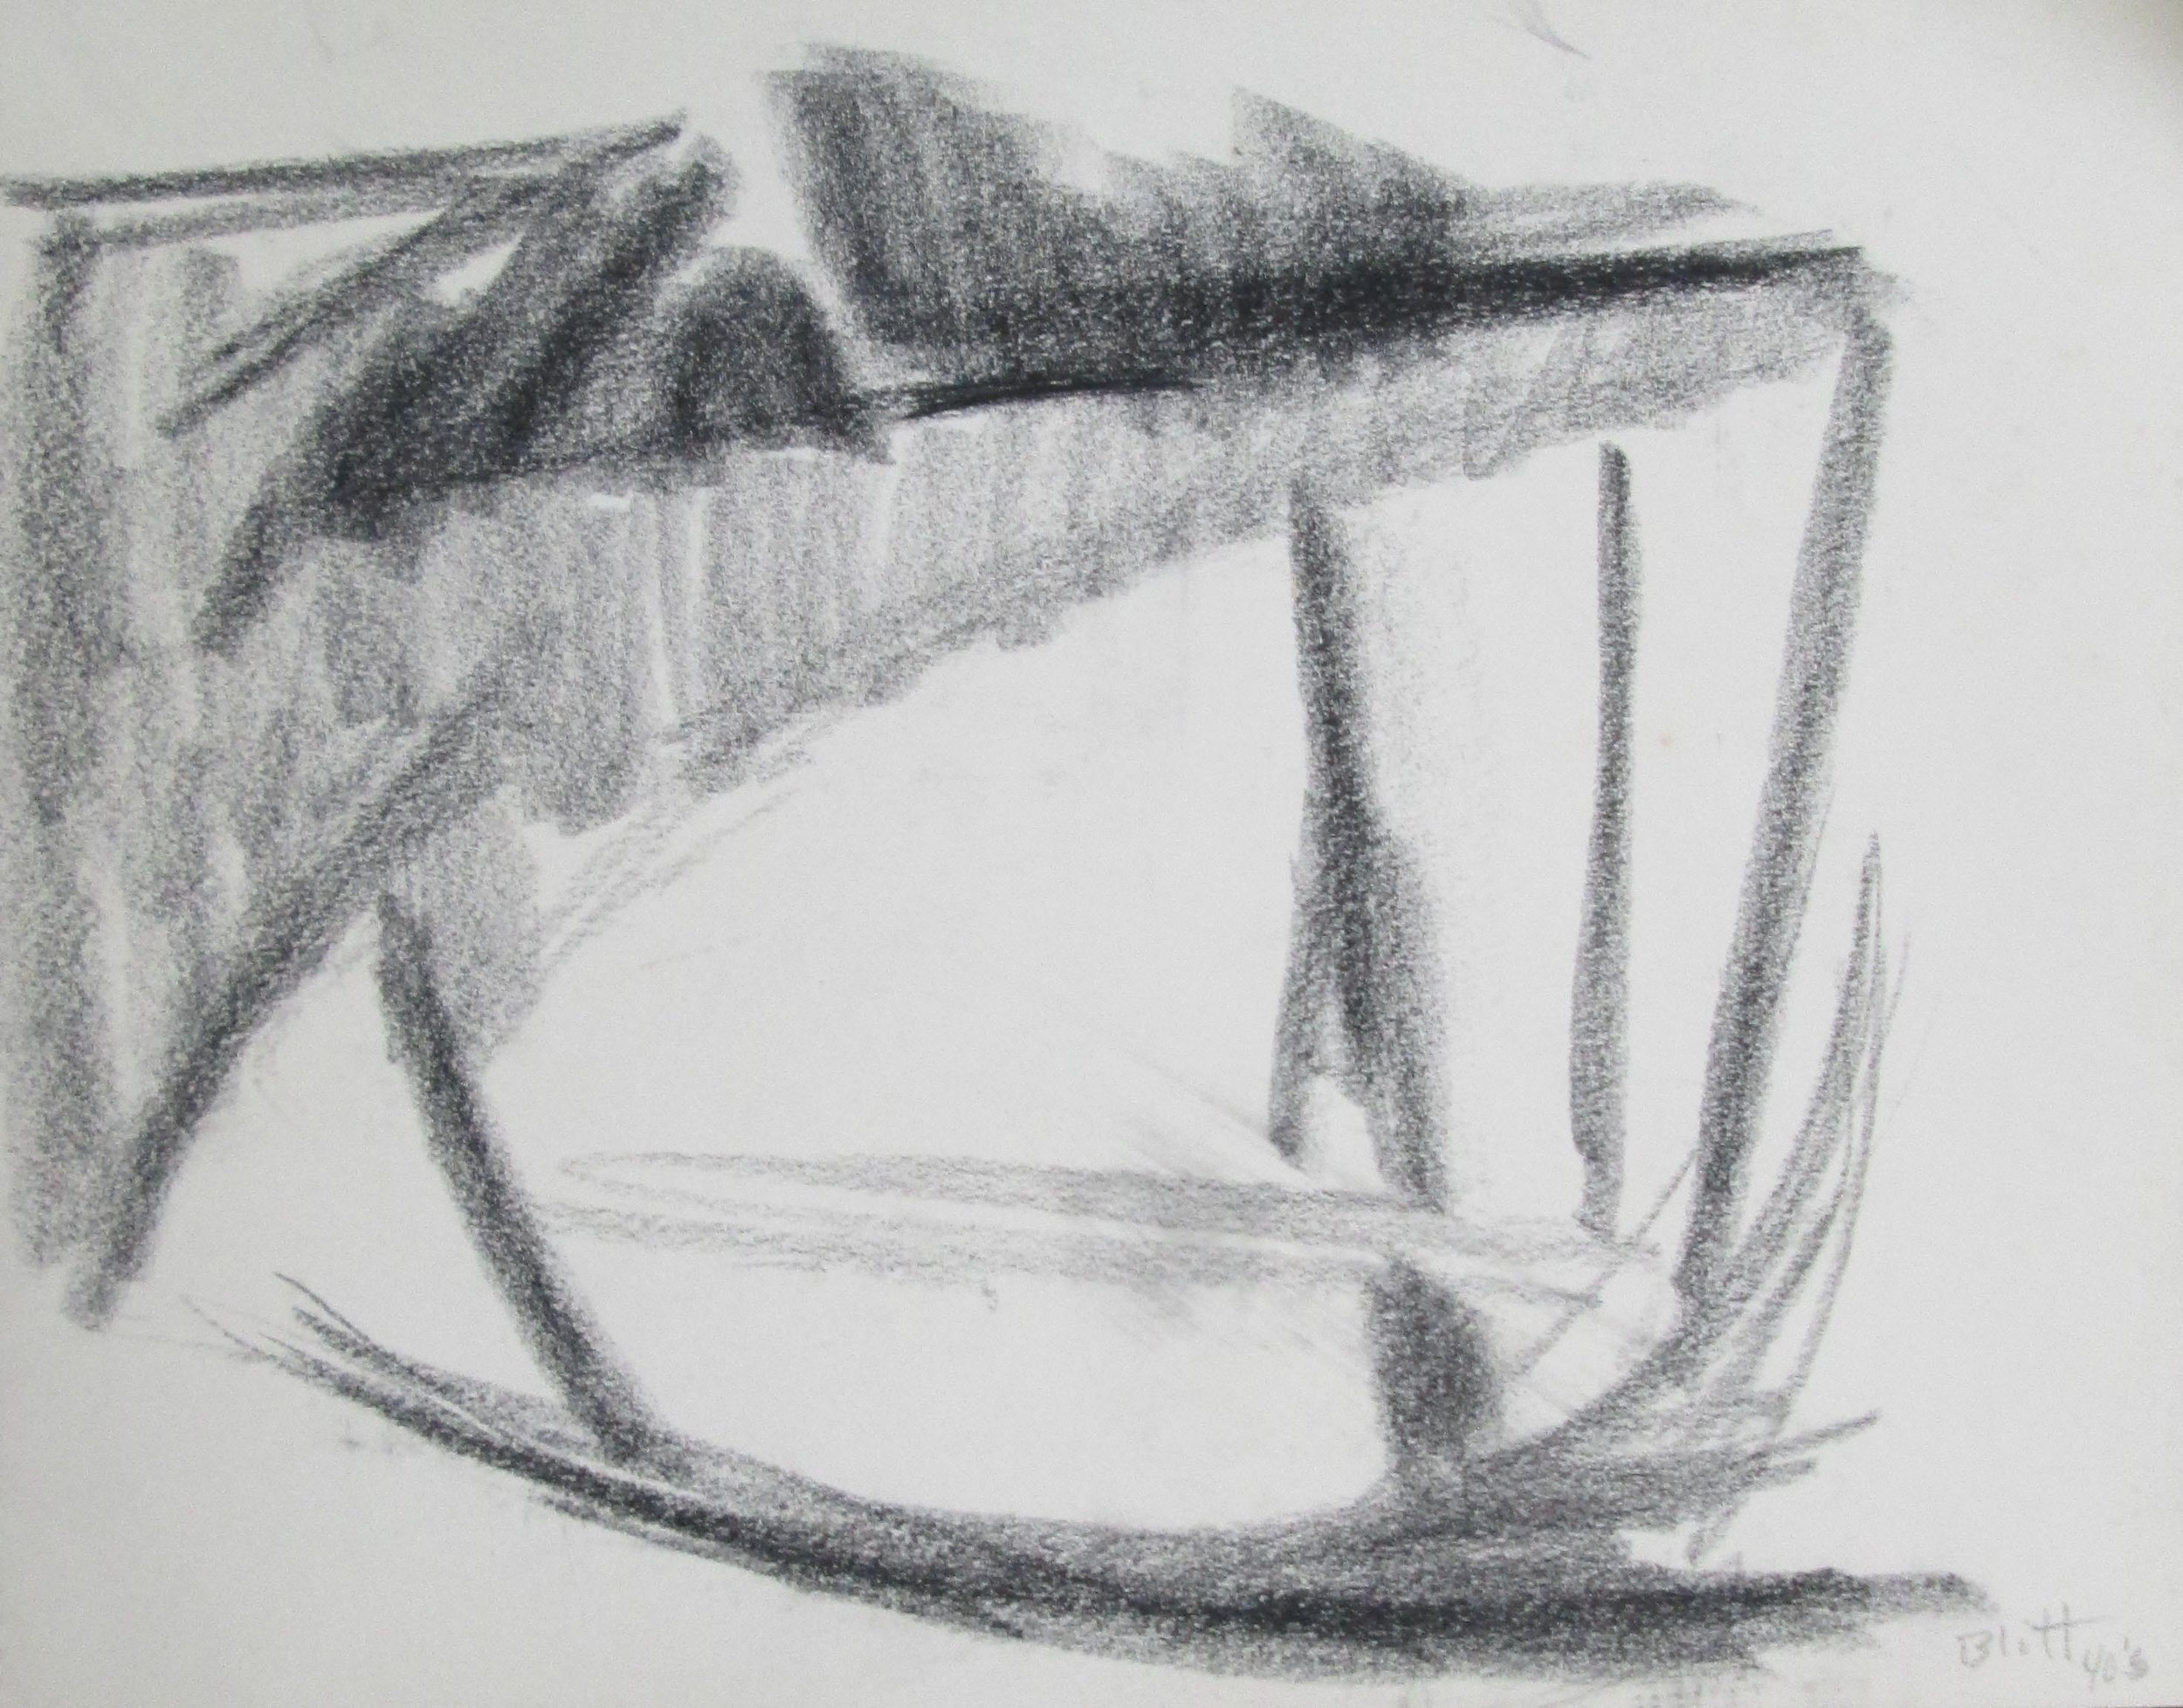 1950.0001  charcoal on paper, 11x14 inches